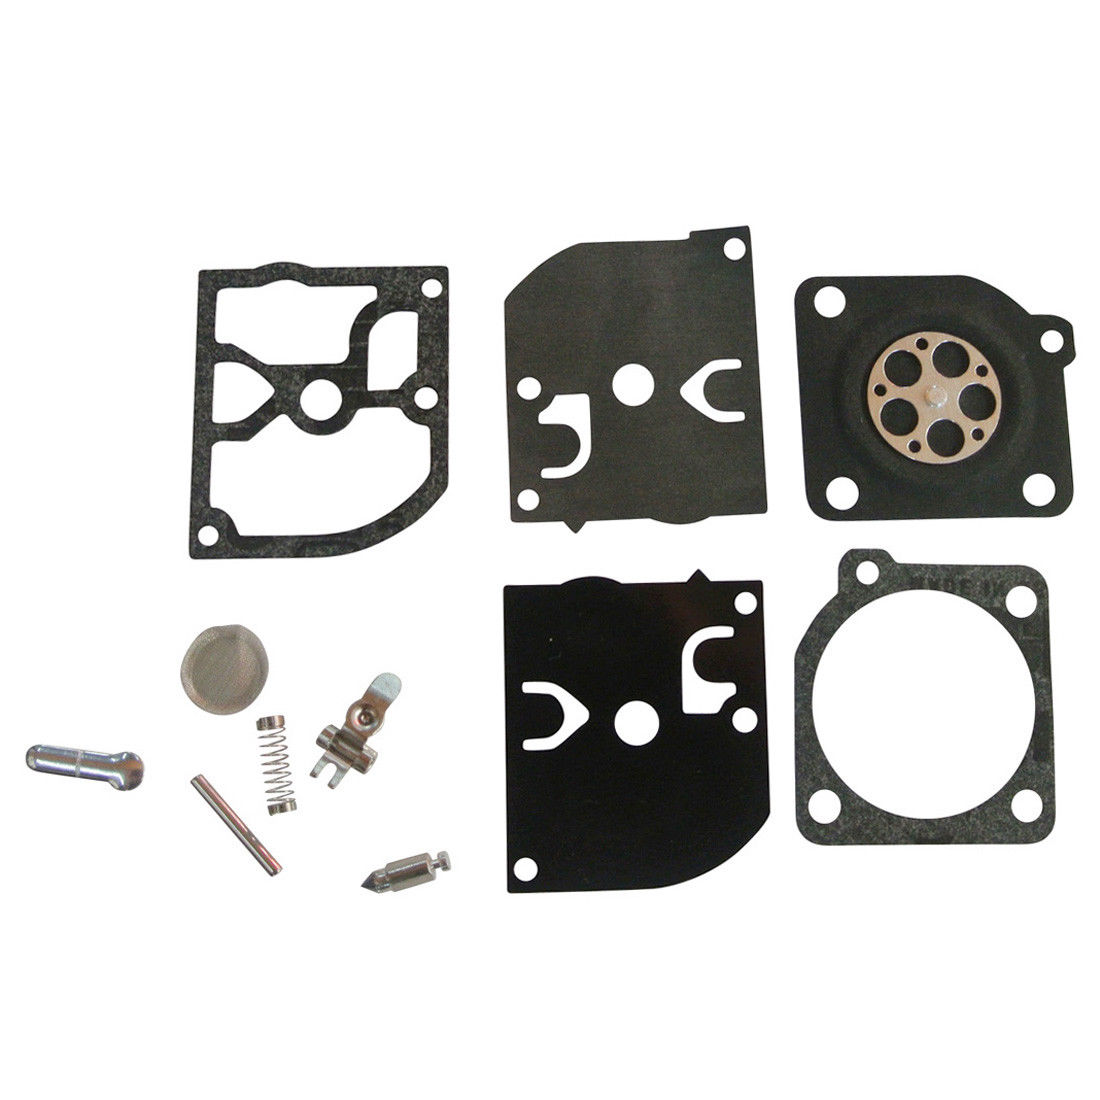 New ZAMA RB-39 Carb Carburetor Diaphragm Rebuild Repair Kit Fit John  Deere/Homelite 250 Chainsaw HBC-40 McCulloch 3200 3210 3214 3216 3516 225  3505